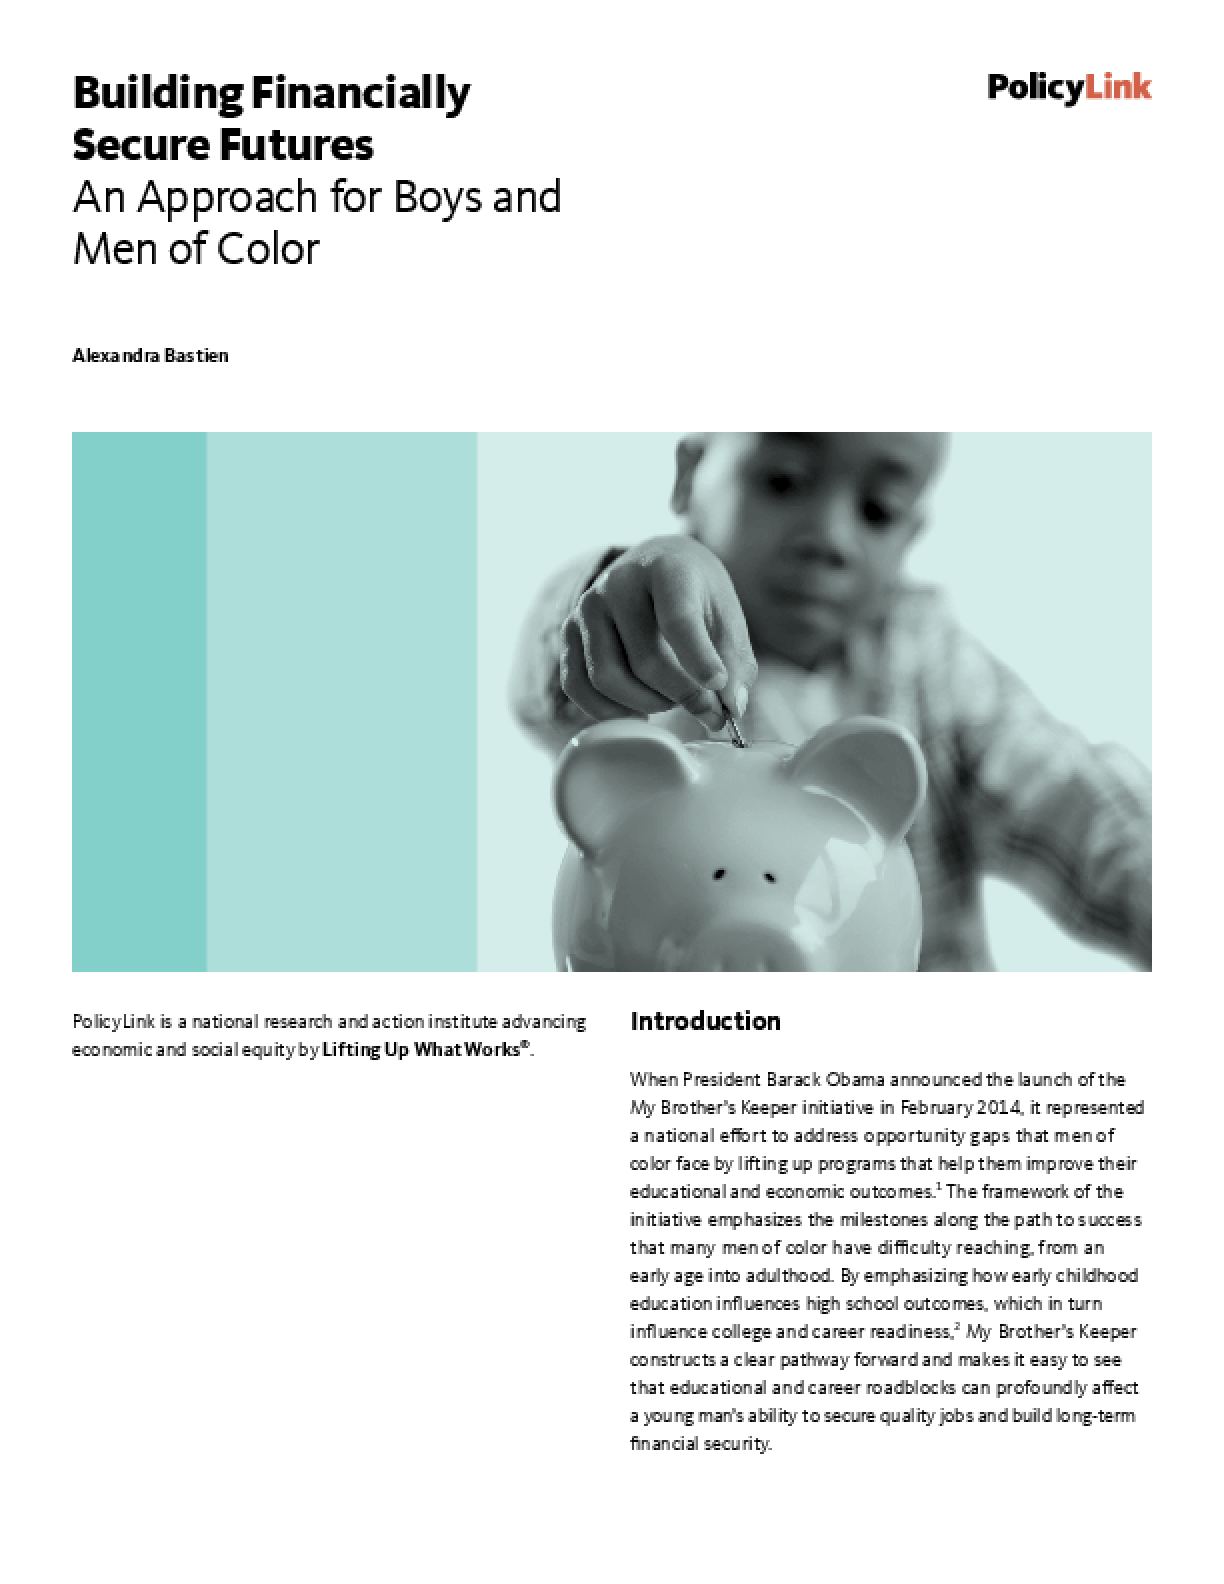 Building Financially Secure Futures: An Approach for Boys and Men of Color